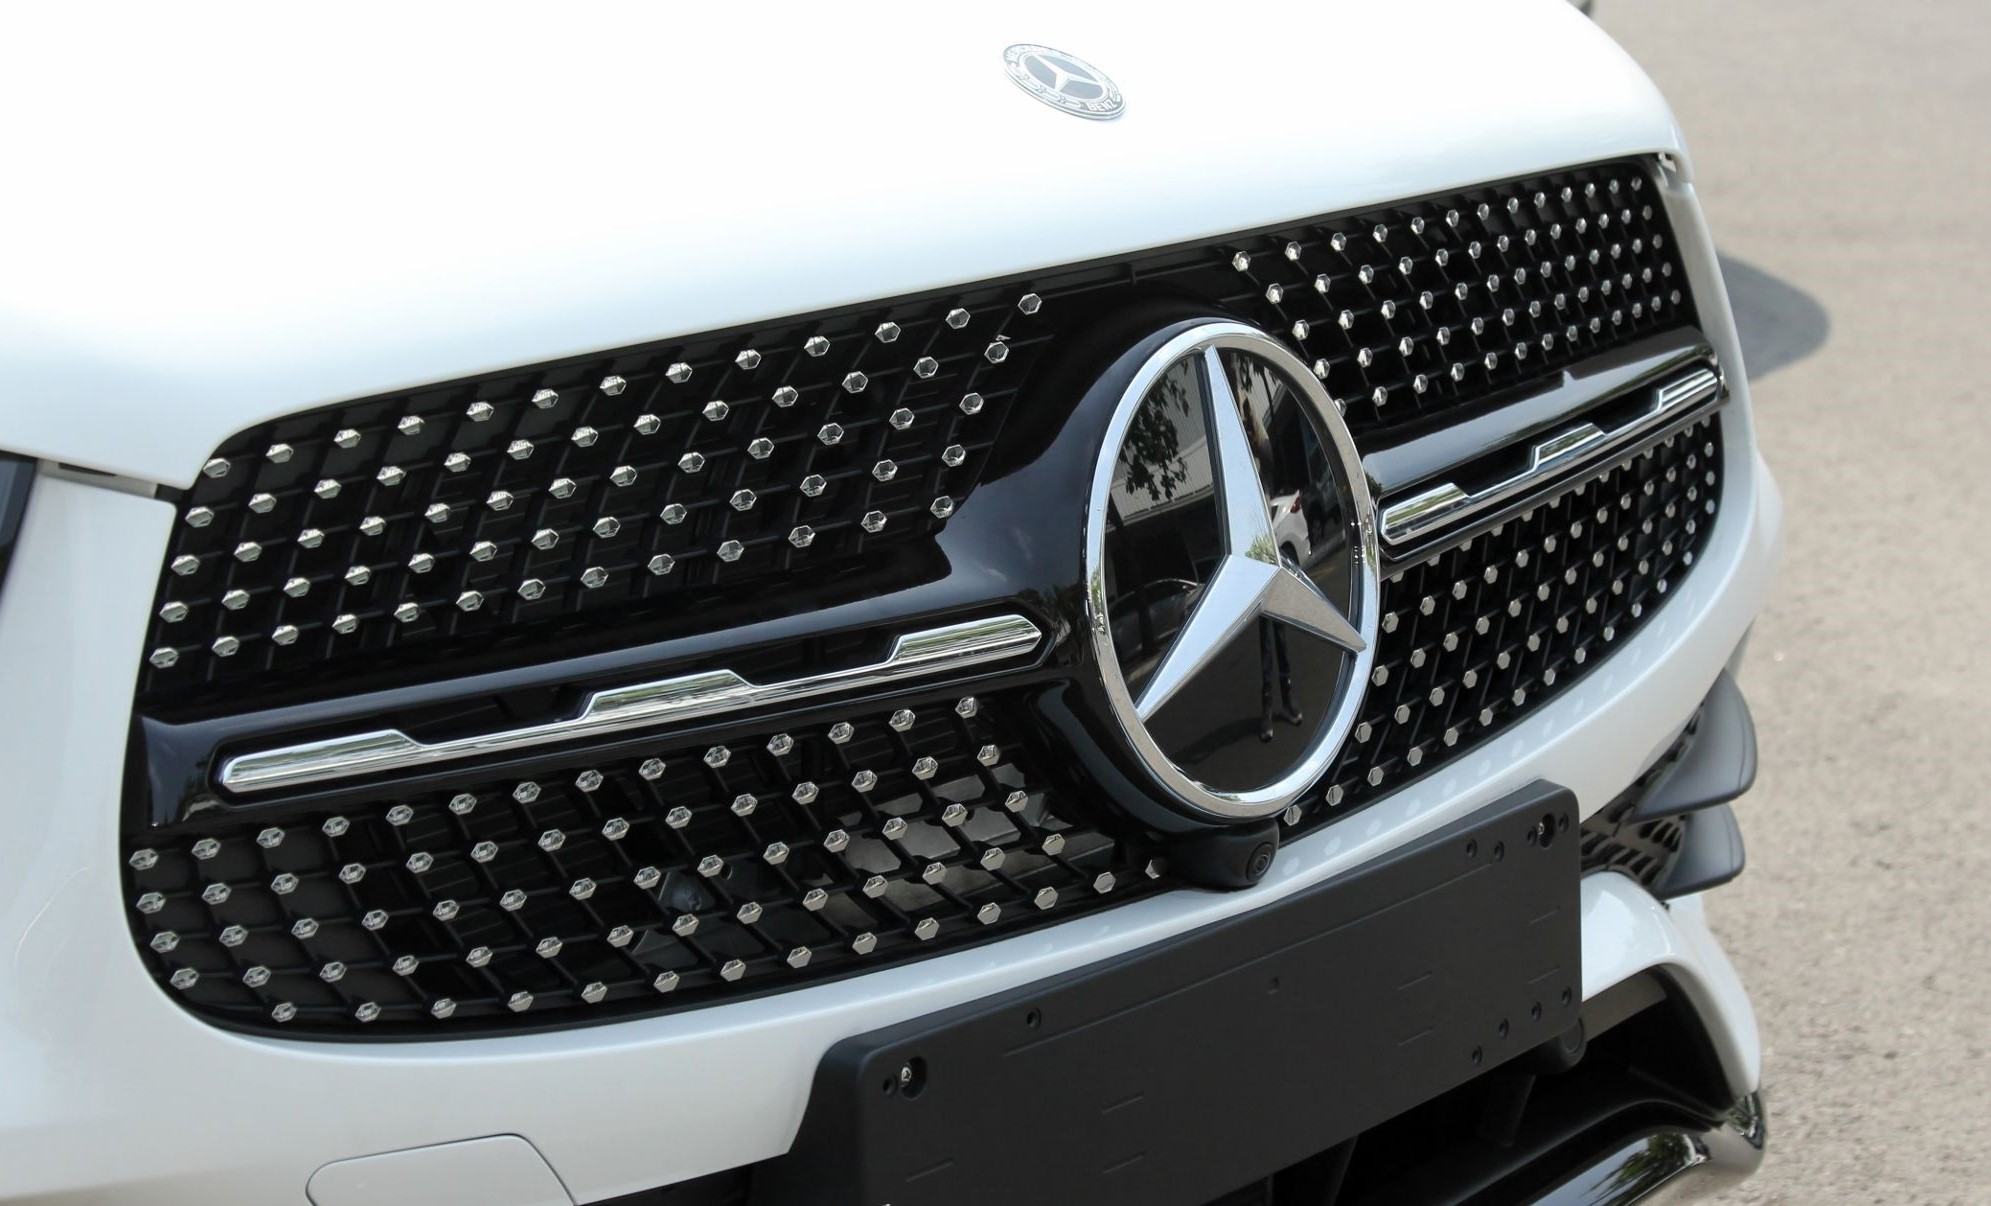 mercedes-glc-300-facelift-2020-noi-that-ngoai-that-mercedeshaxaco-com-vn